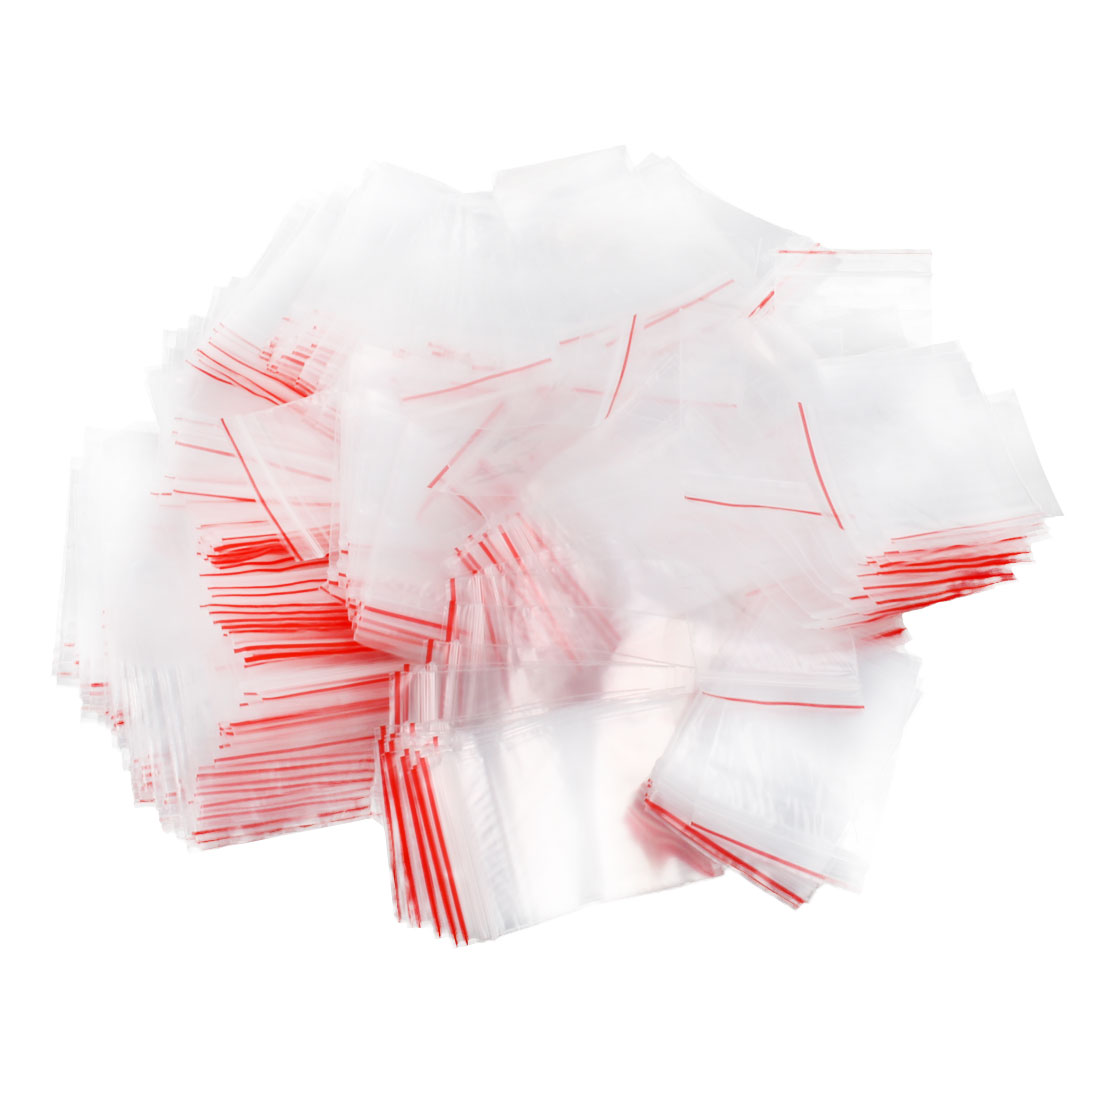 1Mil Poly Rectangle Reclosable Zip Lock Zipper Seal Bags Clear 6 x 4cm 500 Pcs